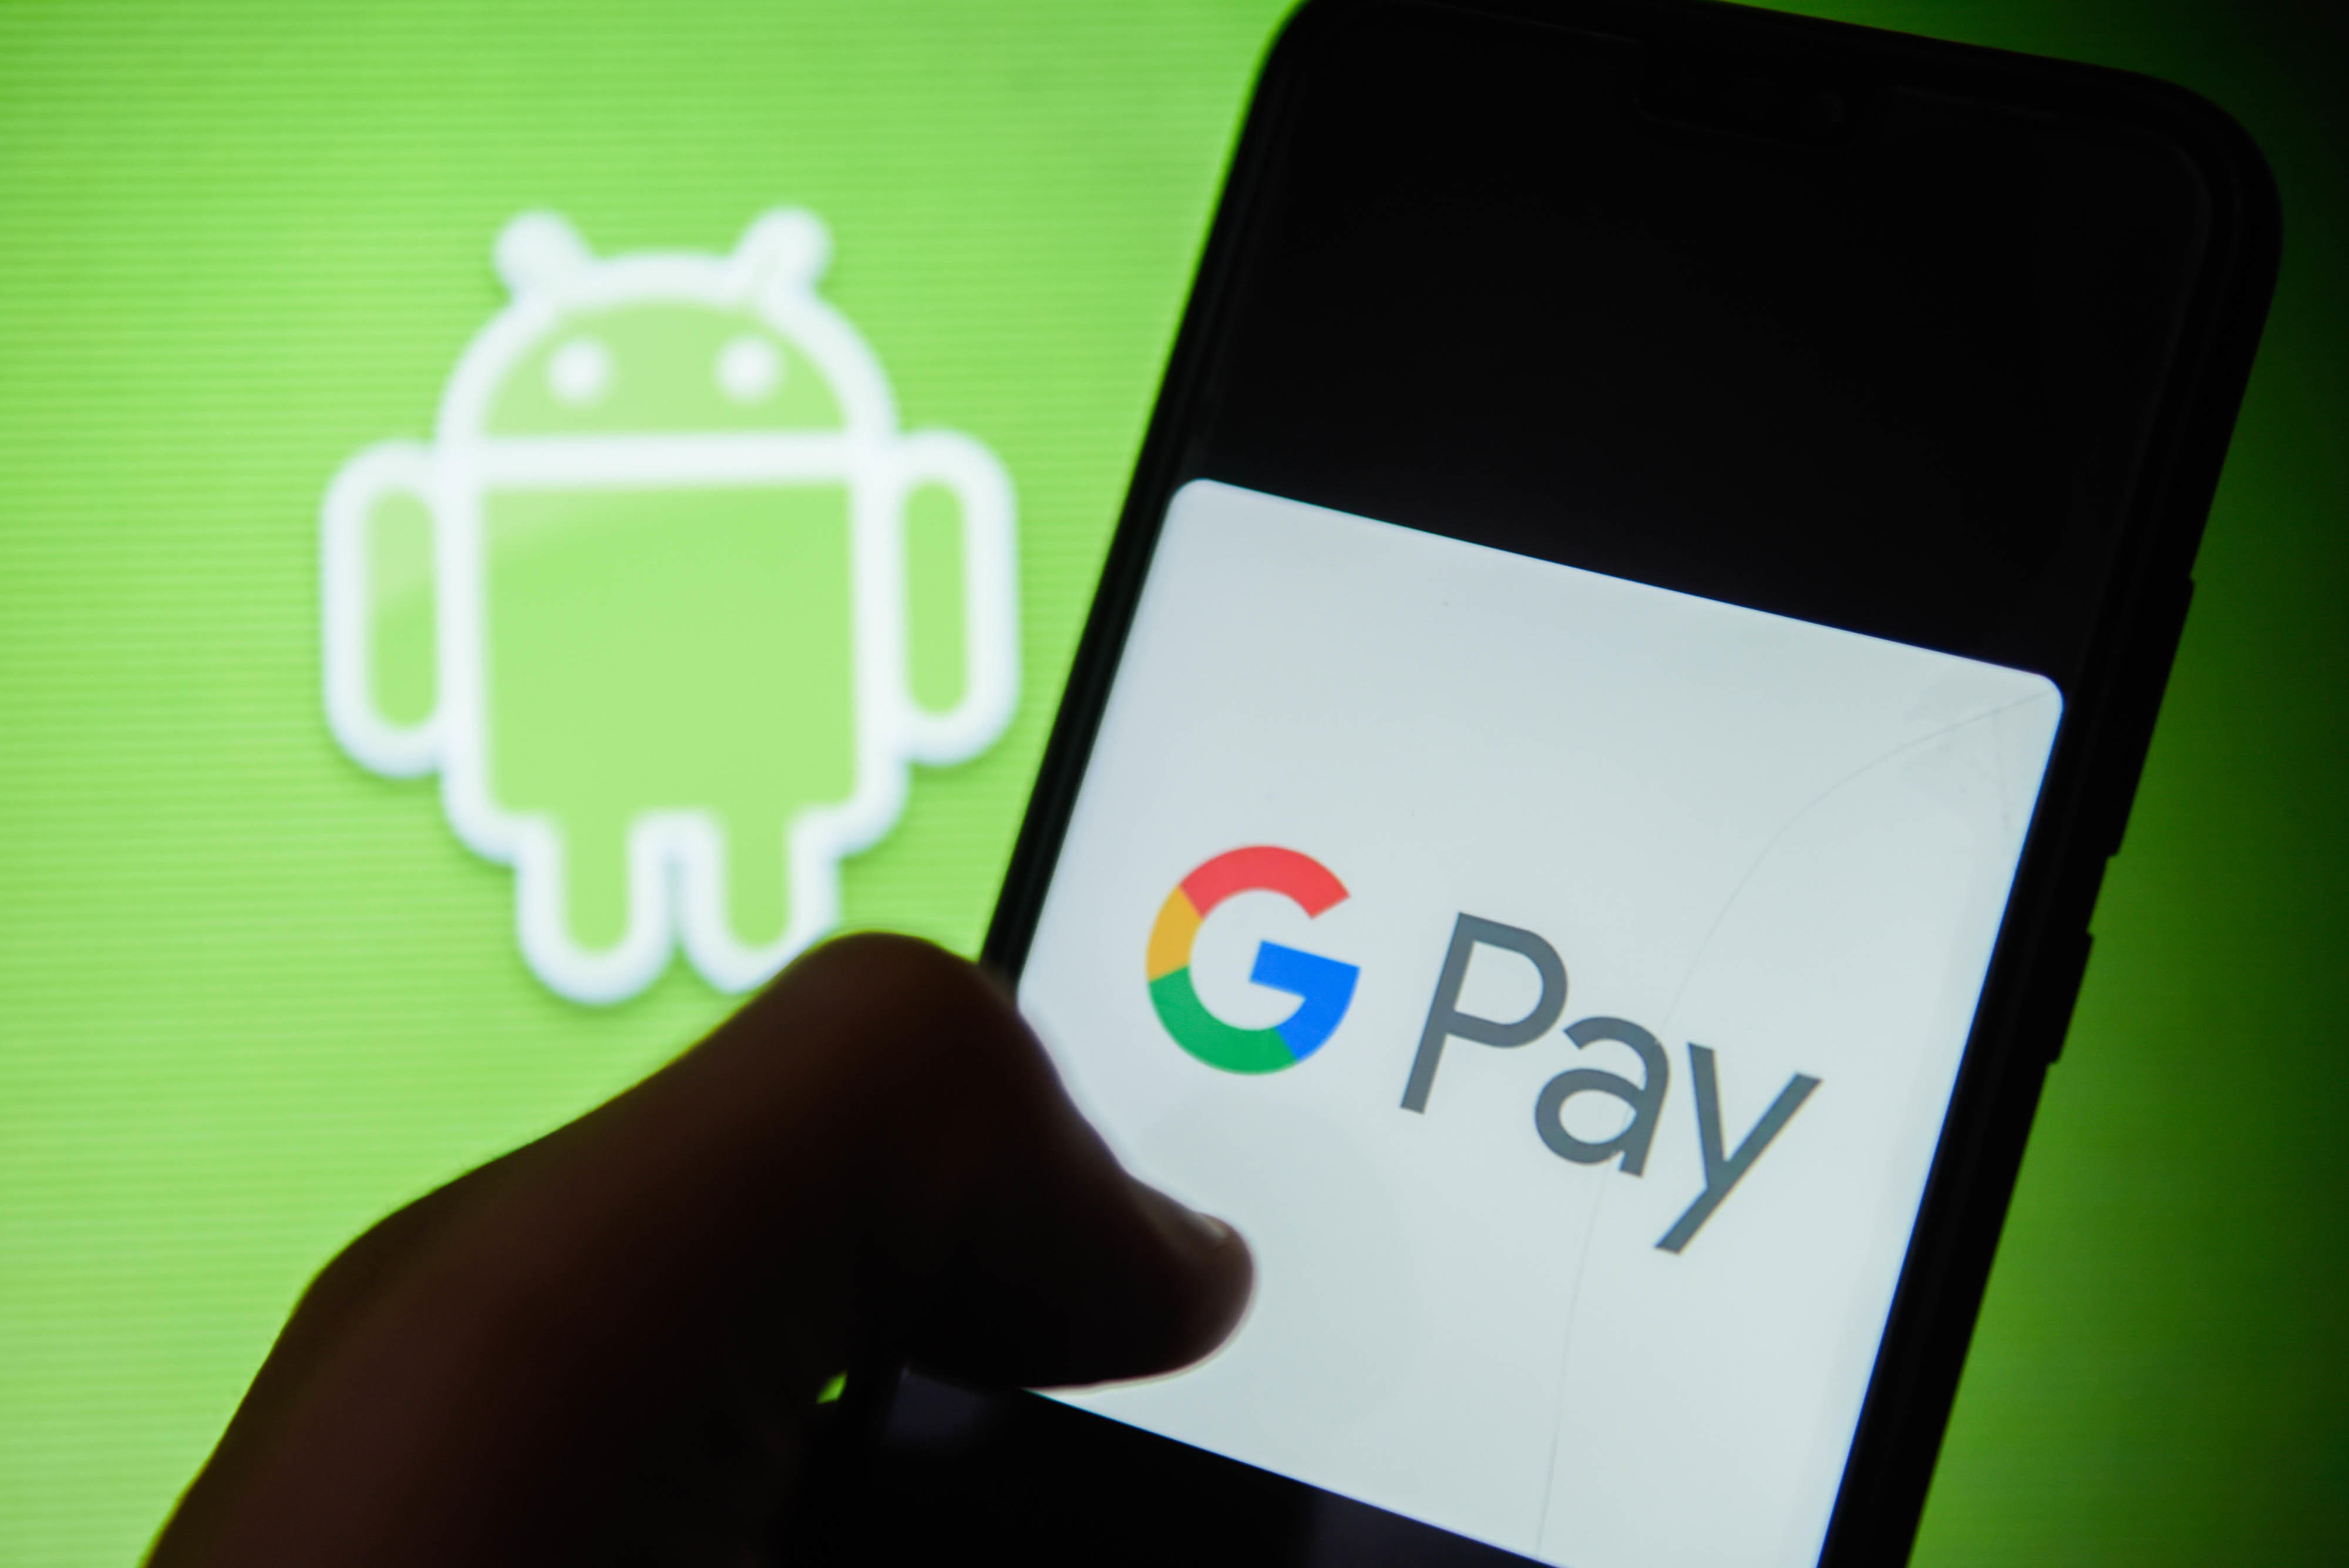 Google Pay logo is seen on an android mobile phone